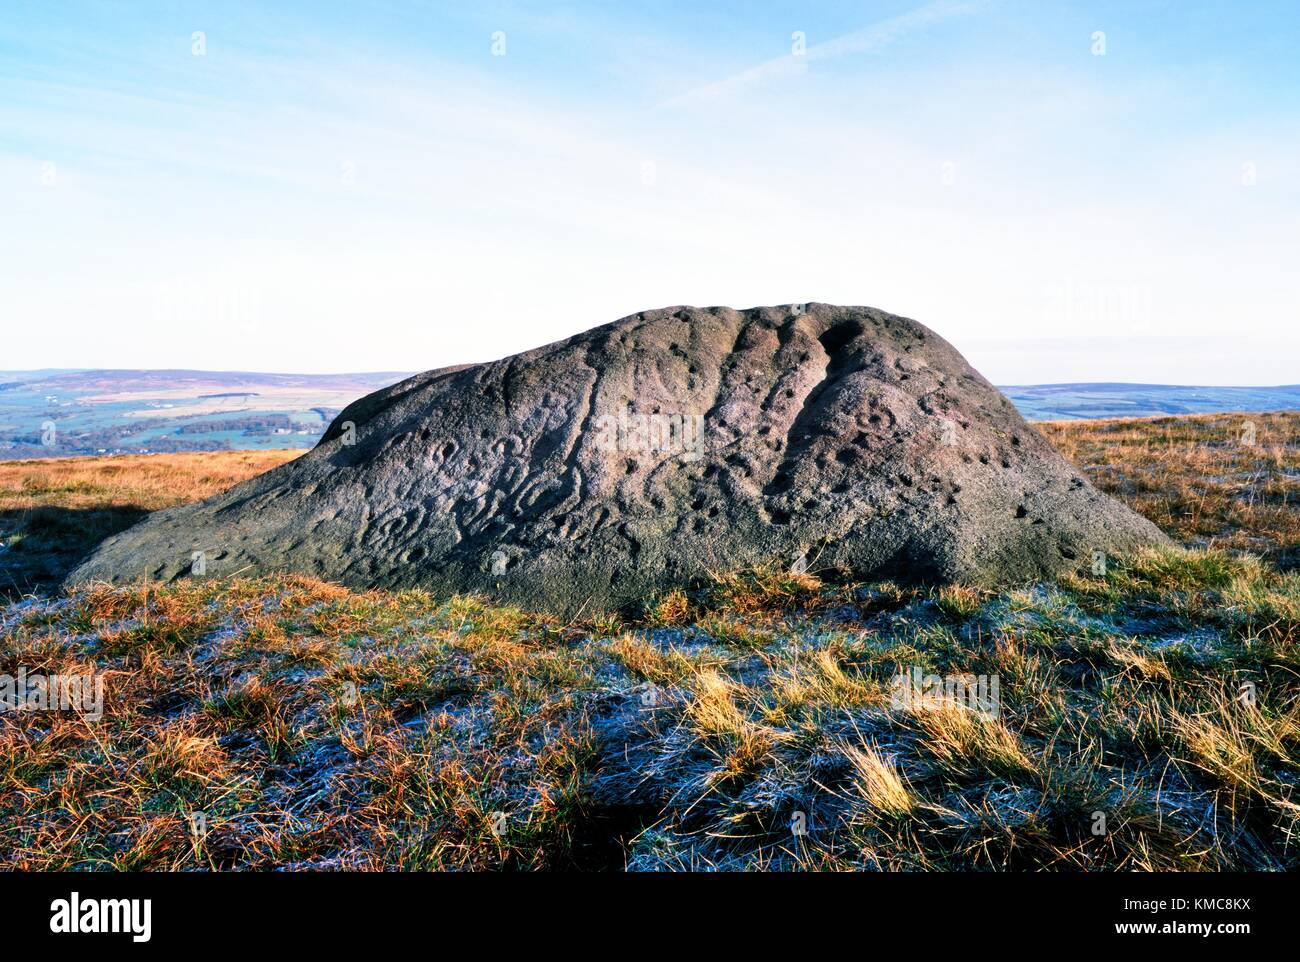 The Badger Stone, Ilkley Moor, West Yorkshire, England. Natural boulder carved with prehistoric cup and ring marks - Stock Image